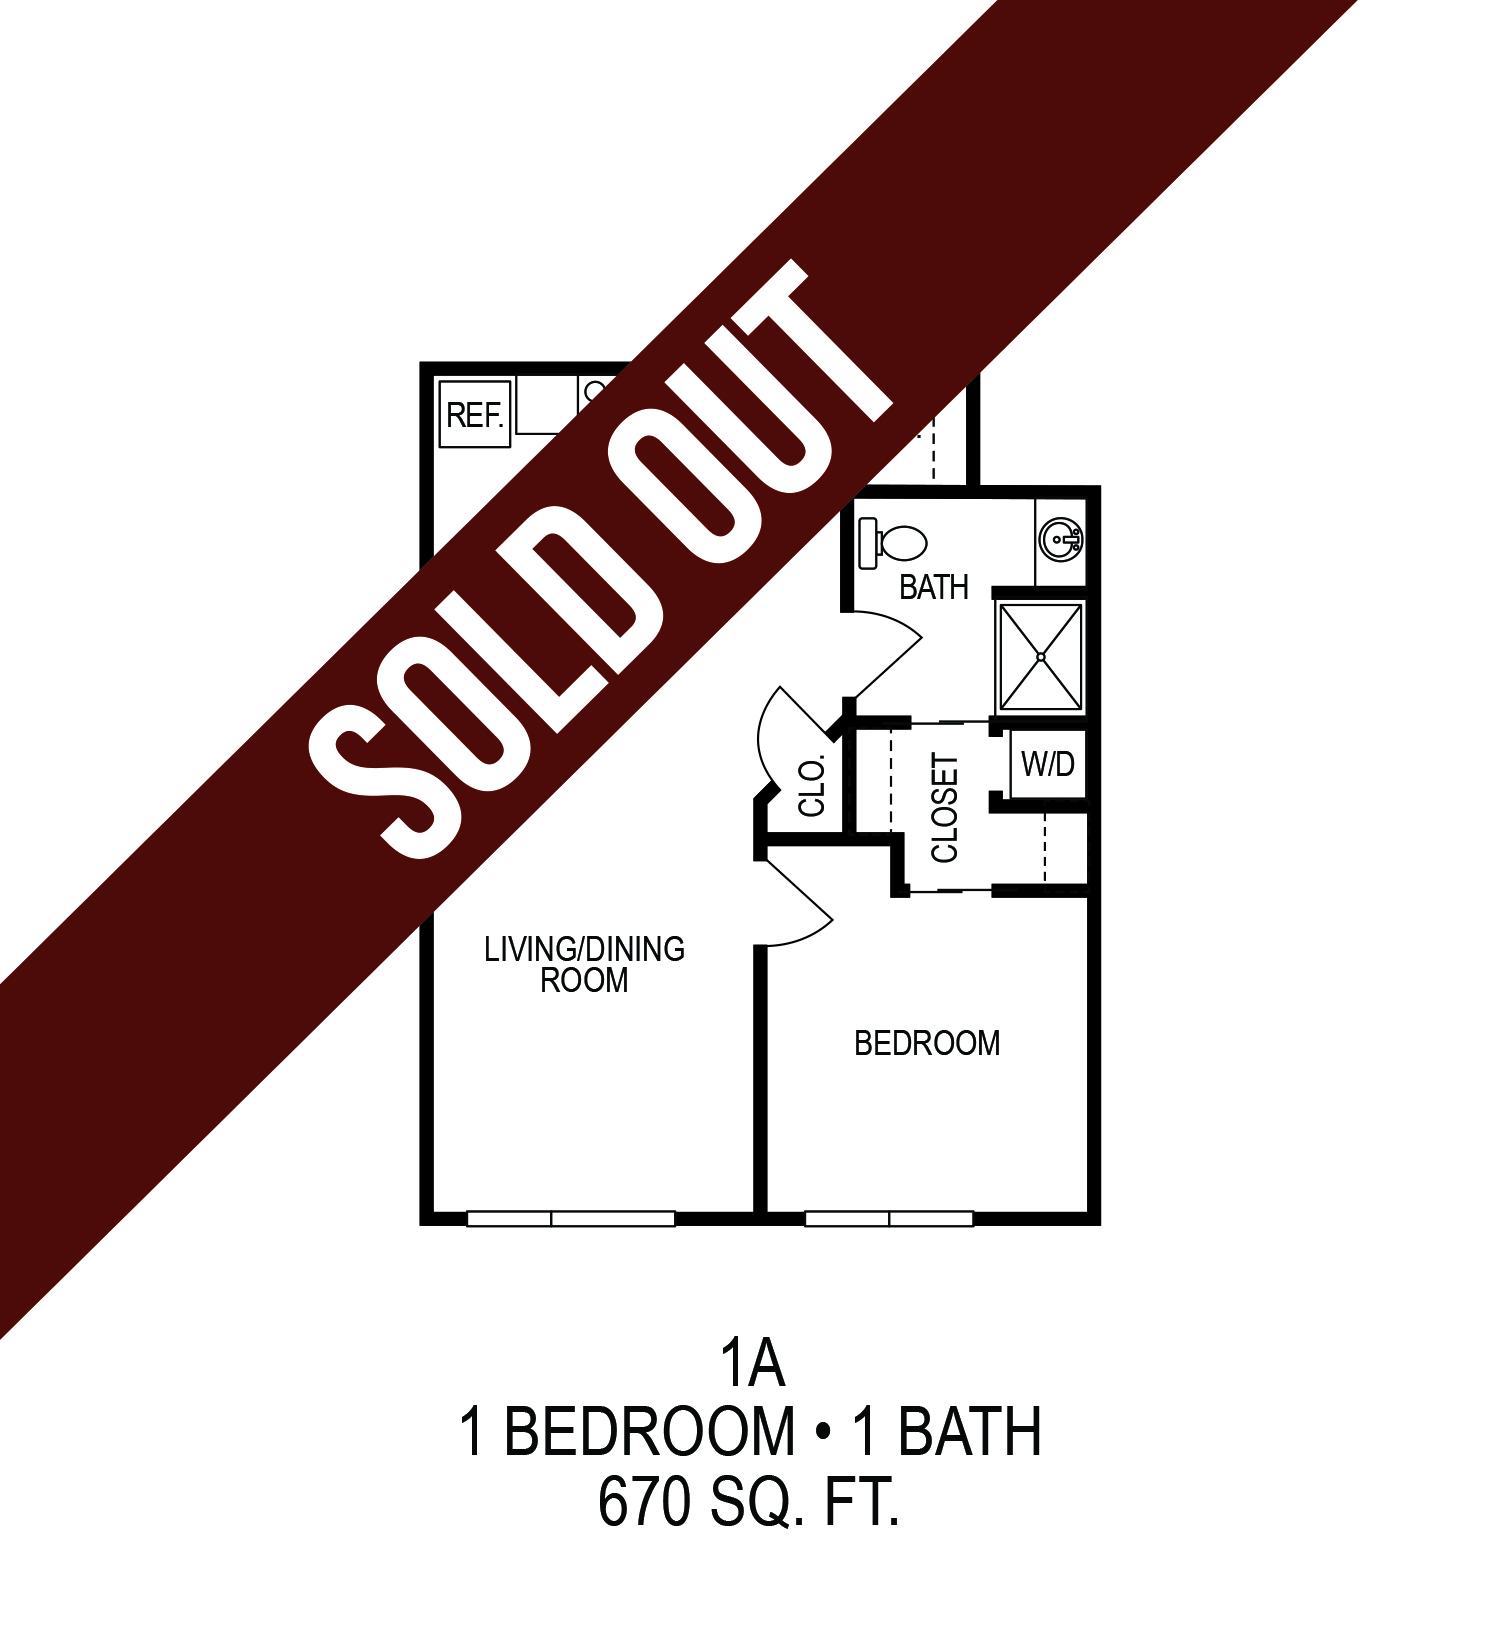 Floorplan - One Bedroom (A)* image